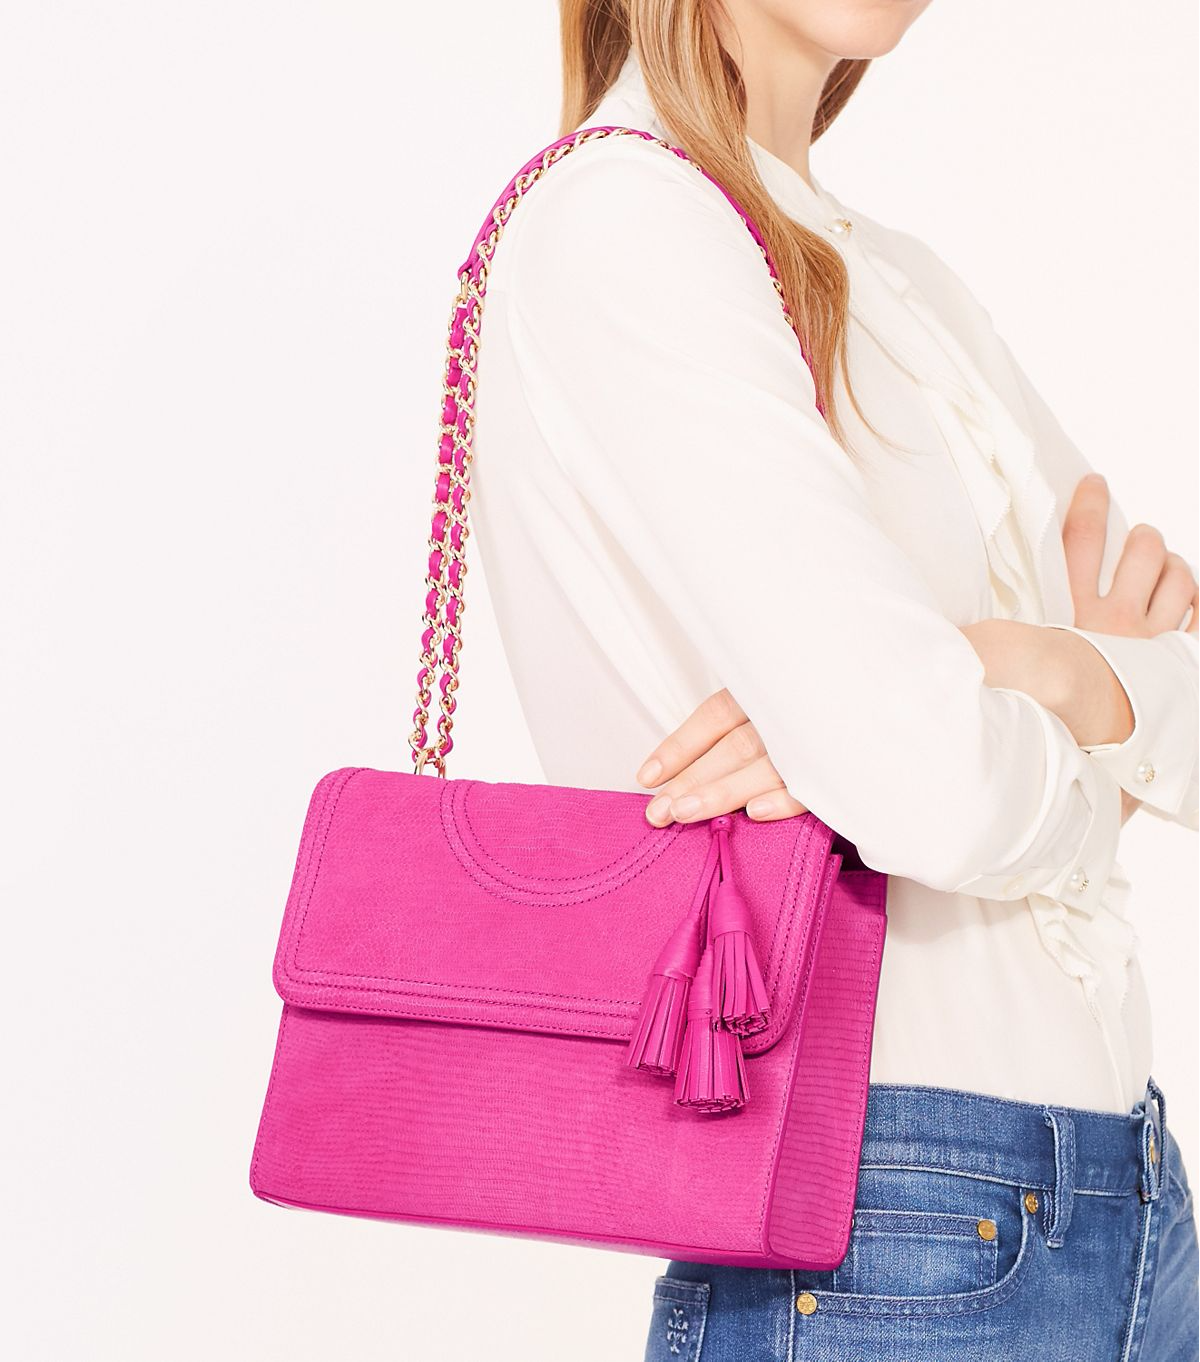 13b0b78a6b8 Love this hot pink from Tory Burch | Bags, Shoes & Jewels | Bags ...